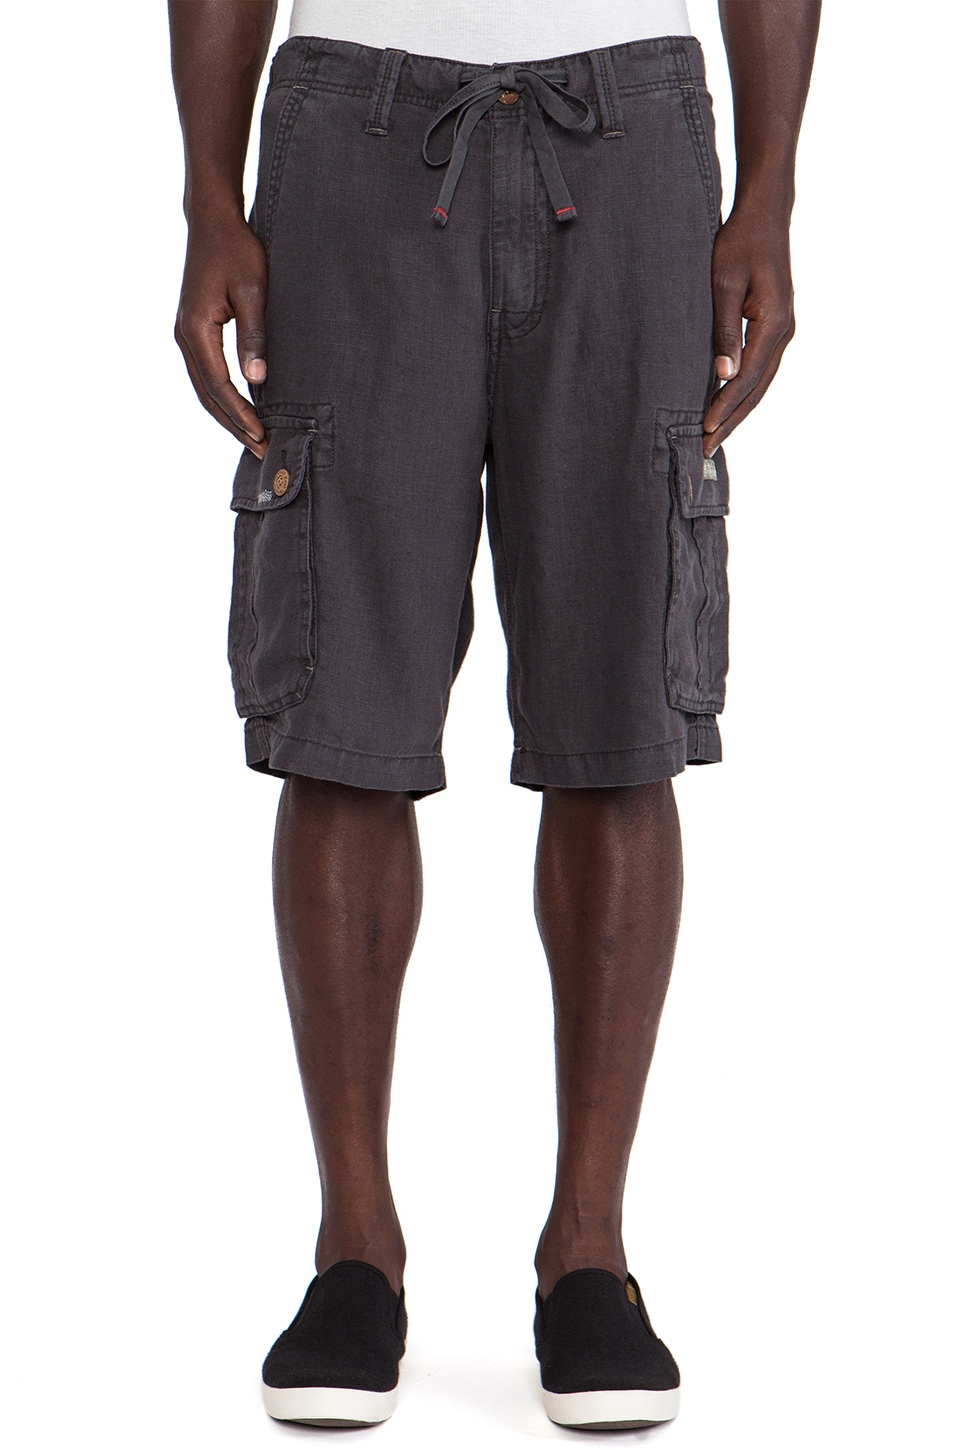 True Religion Recon Short in Washed Black